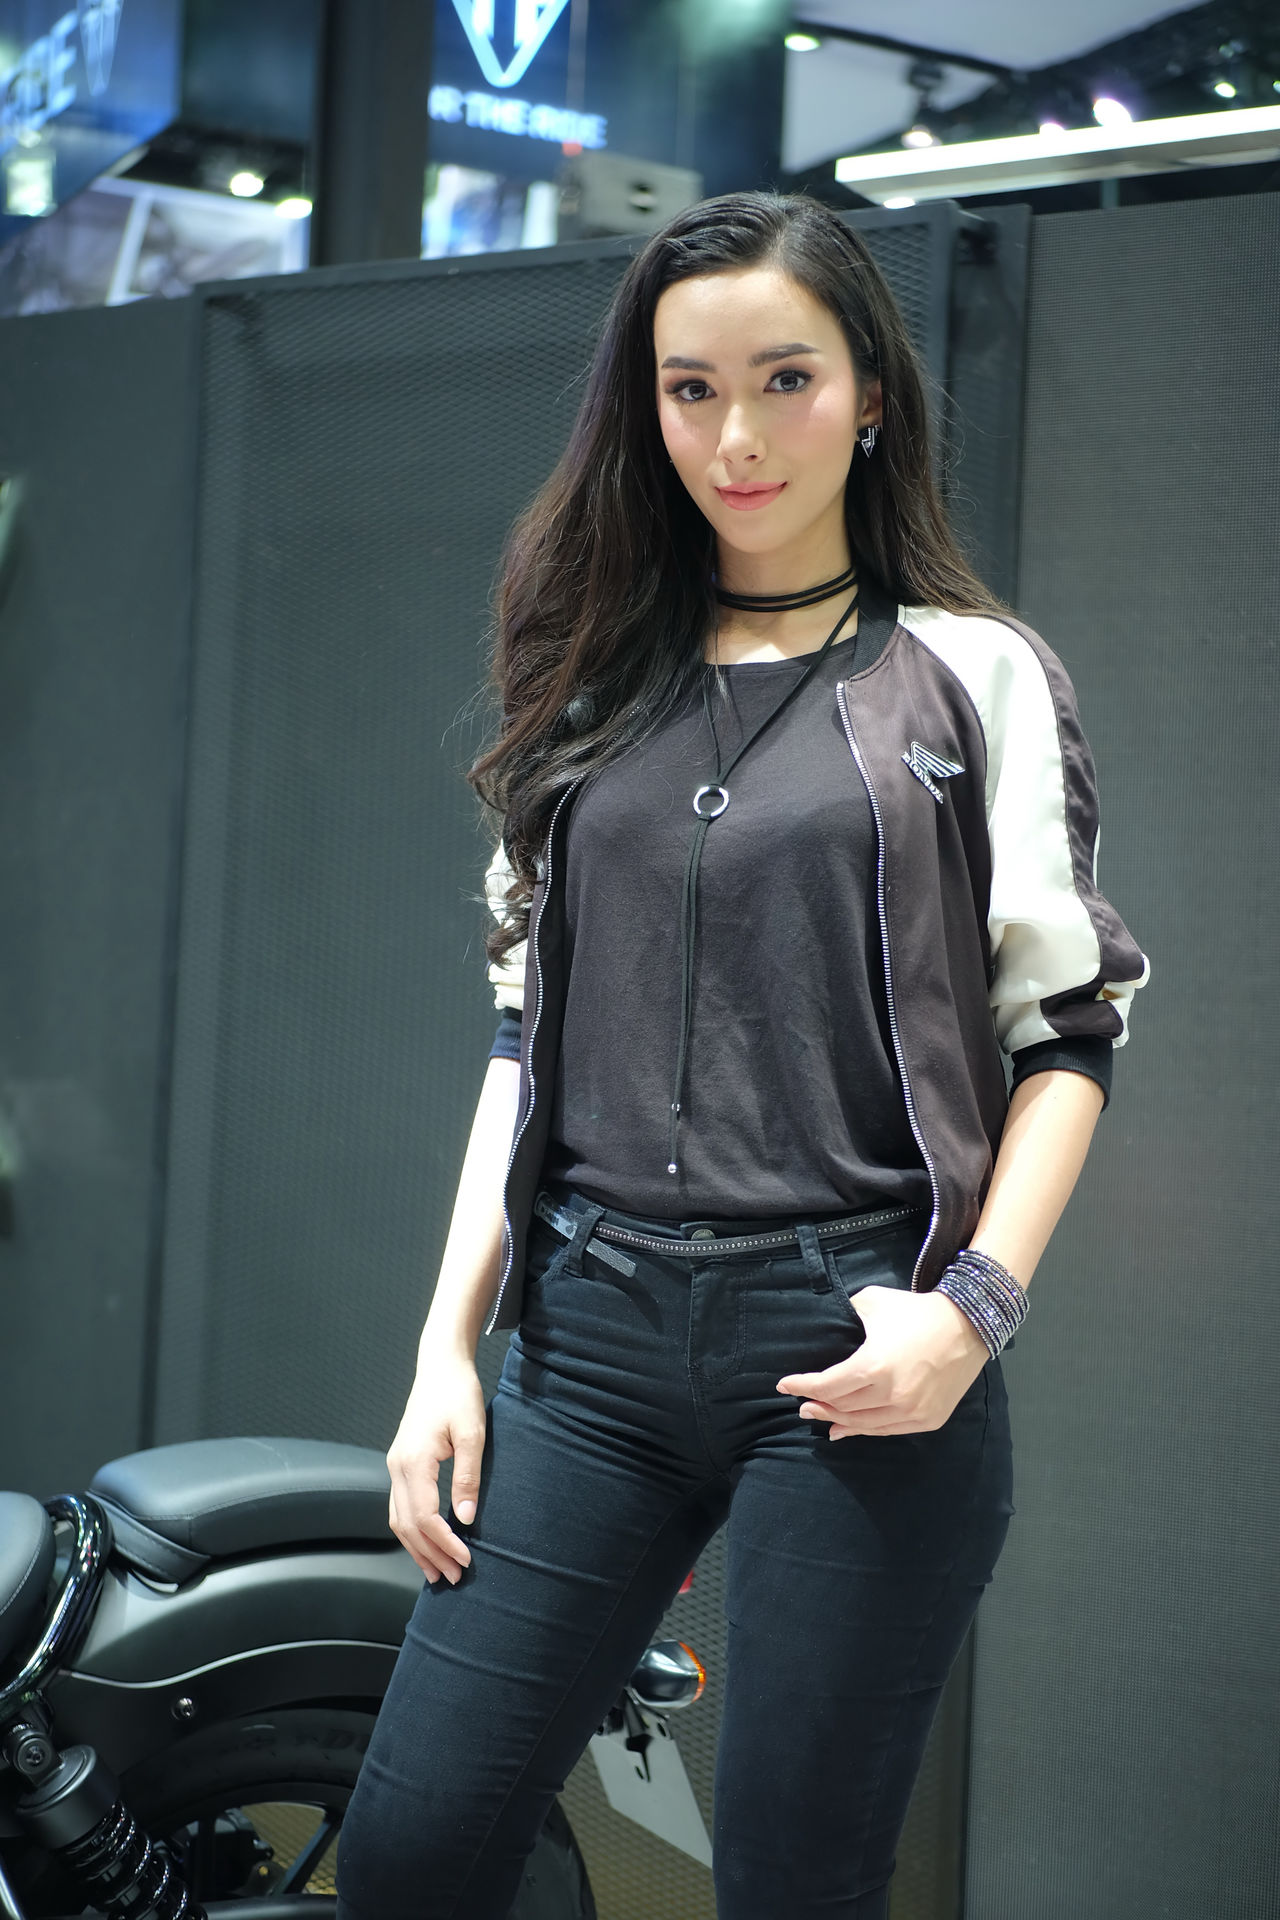 pretty motorcycle in Thailand motor expo 2016 Car Show Event Exibition Exibition Hall Girl Hall Model Motor Motor Expo Motor Expo 2016 Motorcycle Motorcycles Present Pretty Pretty Girl Pretty Girls Pretty Model Thailand Motor Expo 2016